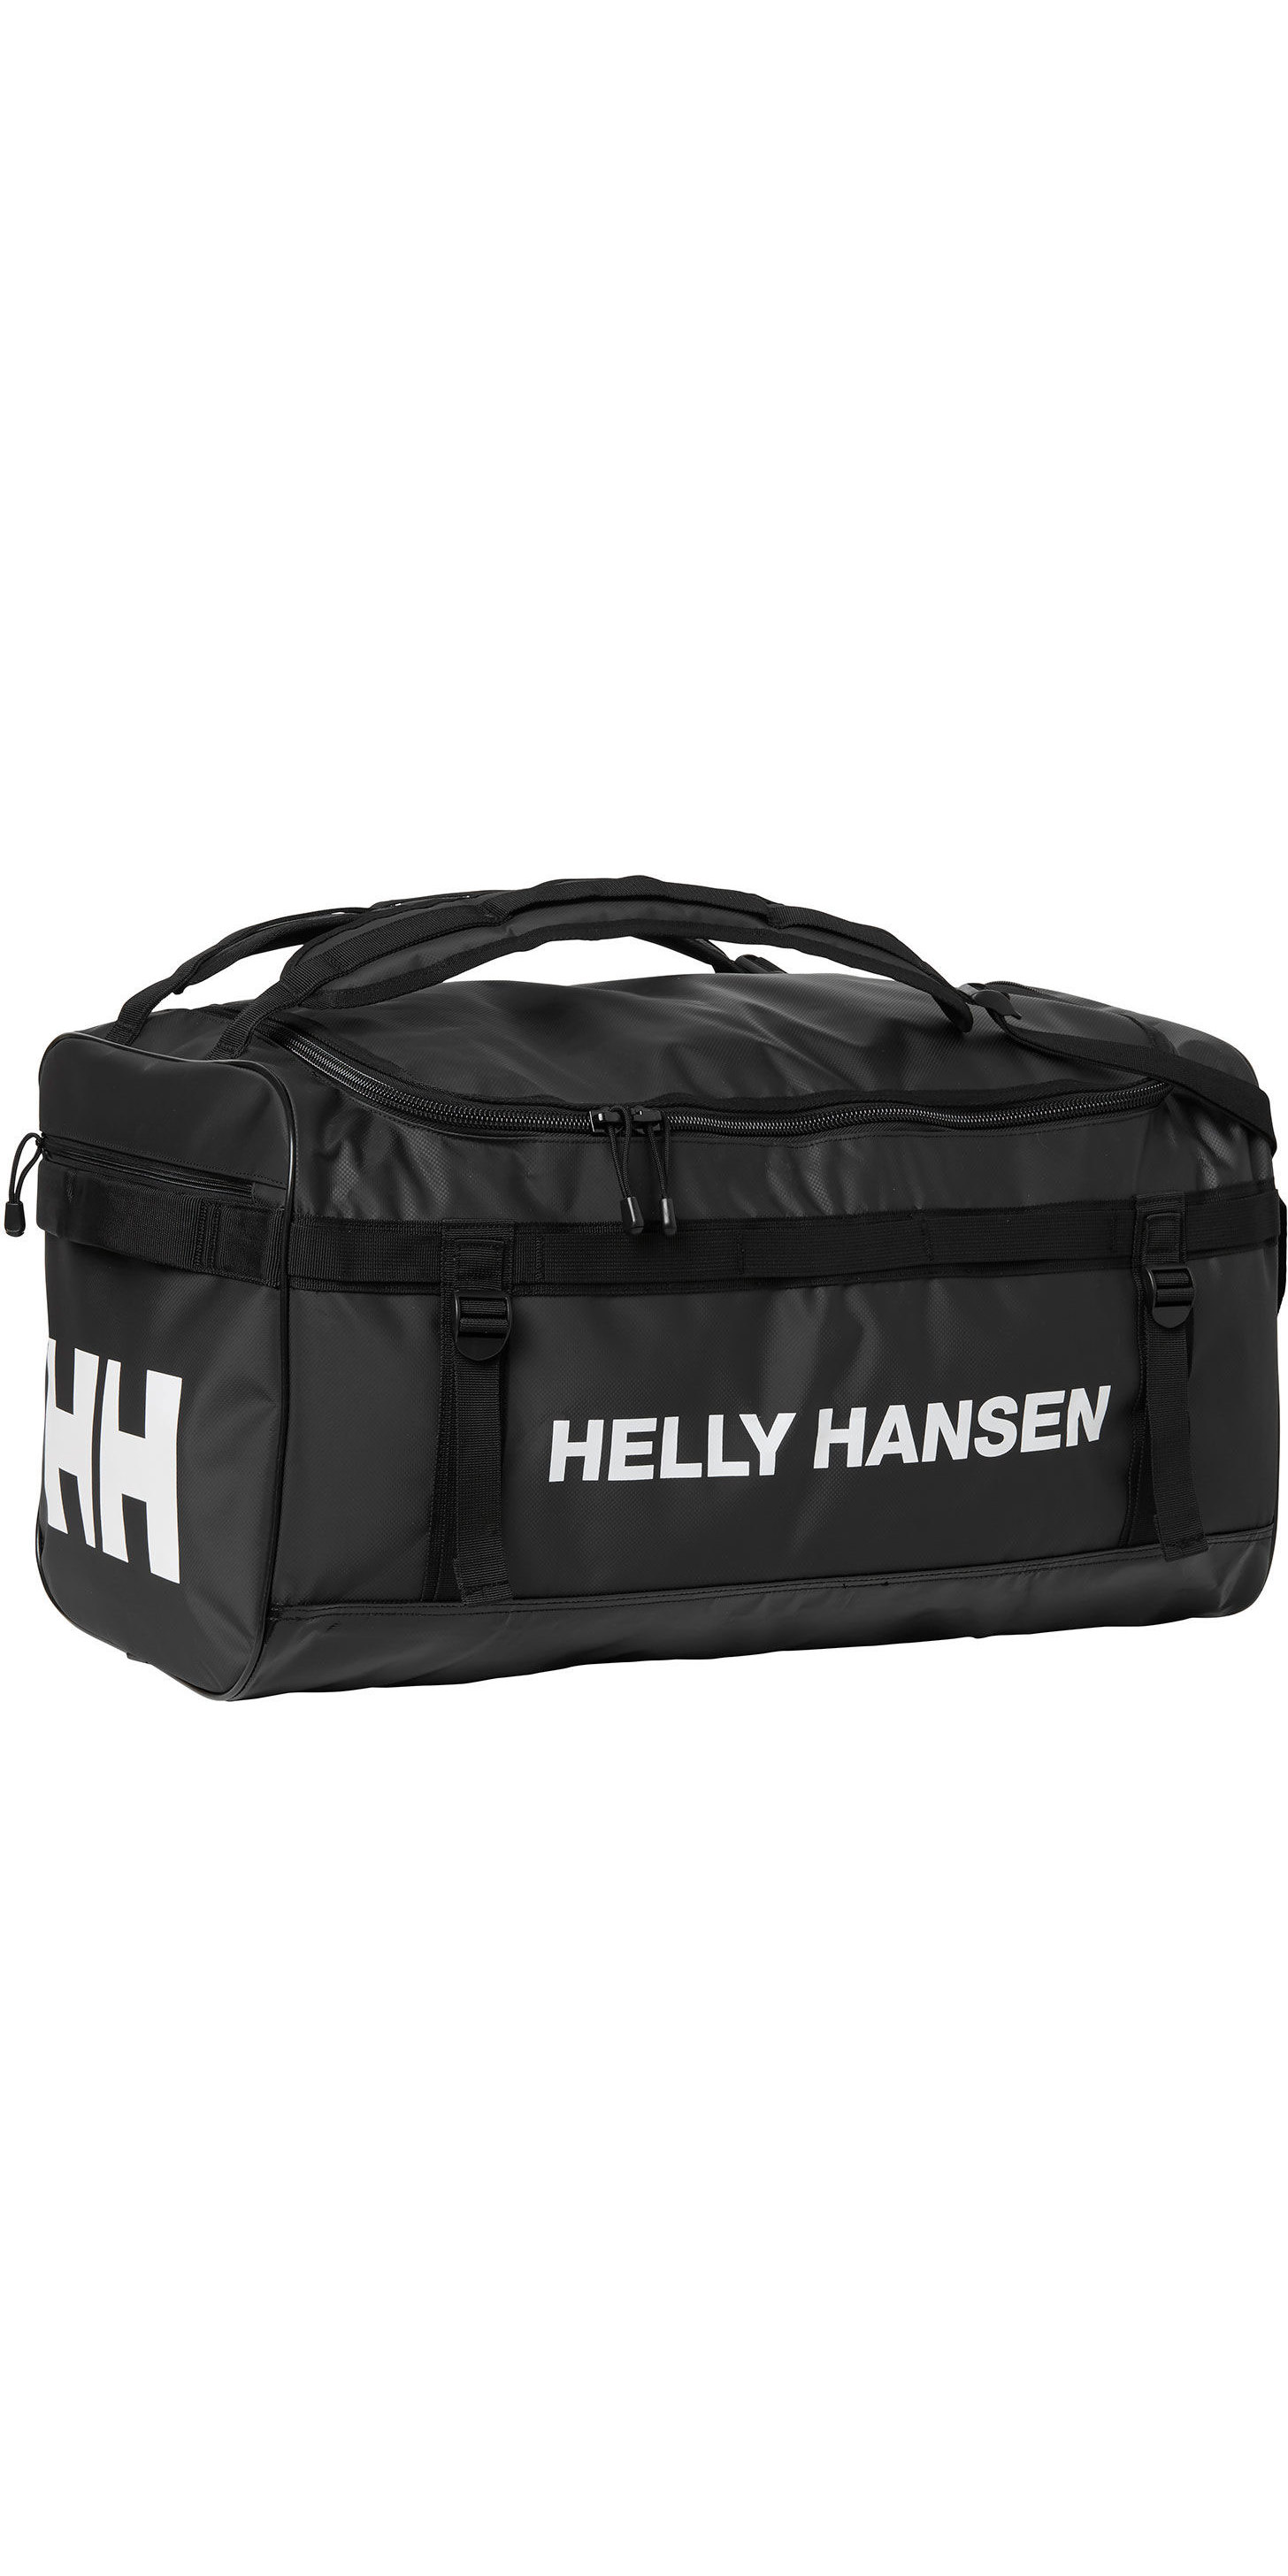 2885e419acd 2019 Helly Hansen 50L Classic Duffel Bag 2 0 S Black 67167 - Holdall -  Luggage Dry Bags - by | Wetsuit Outlet